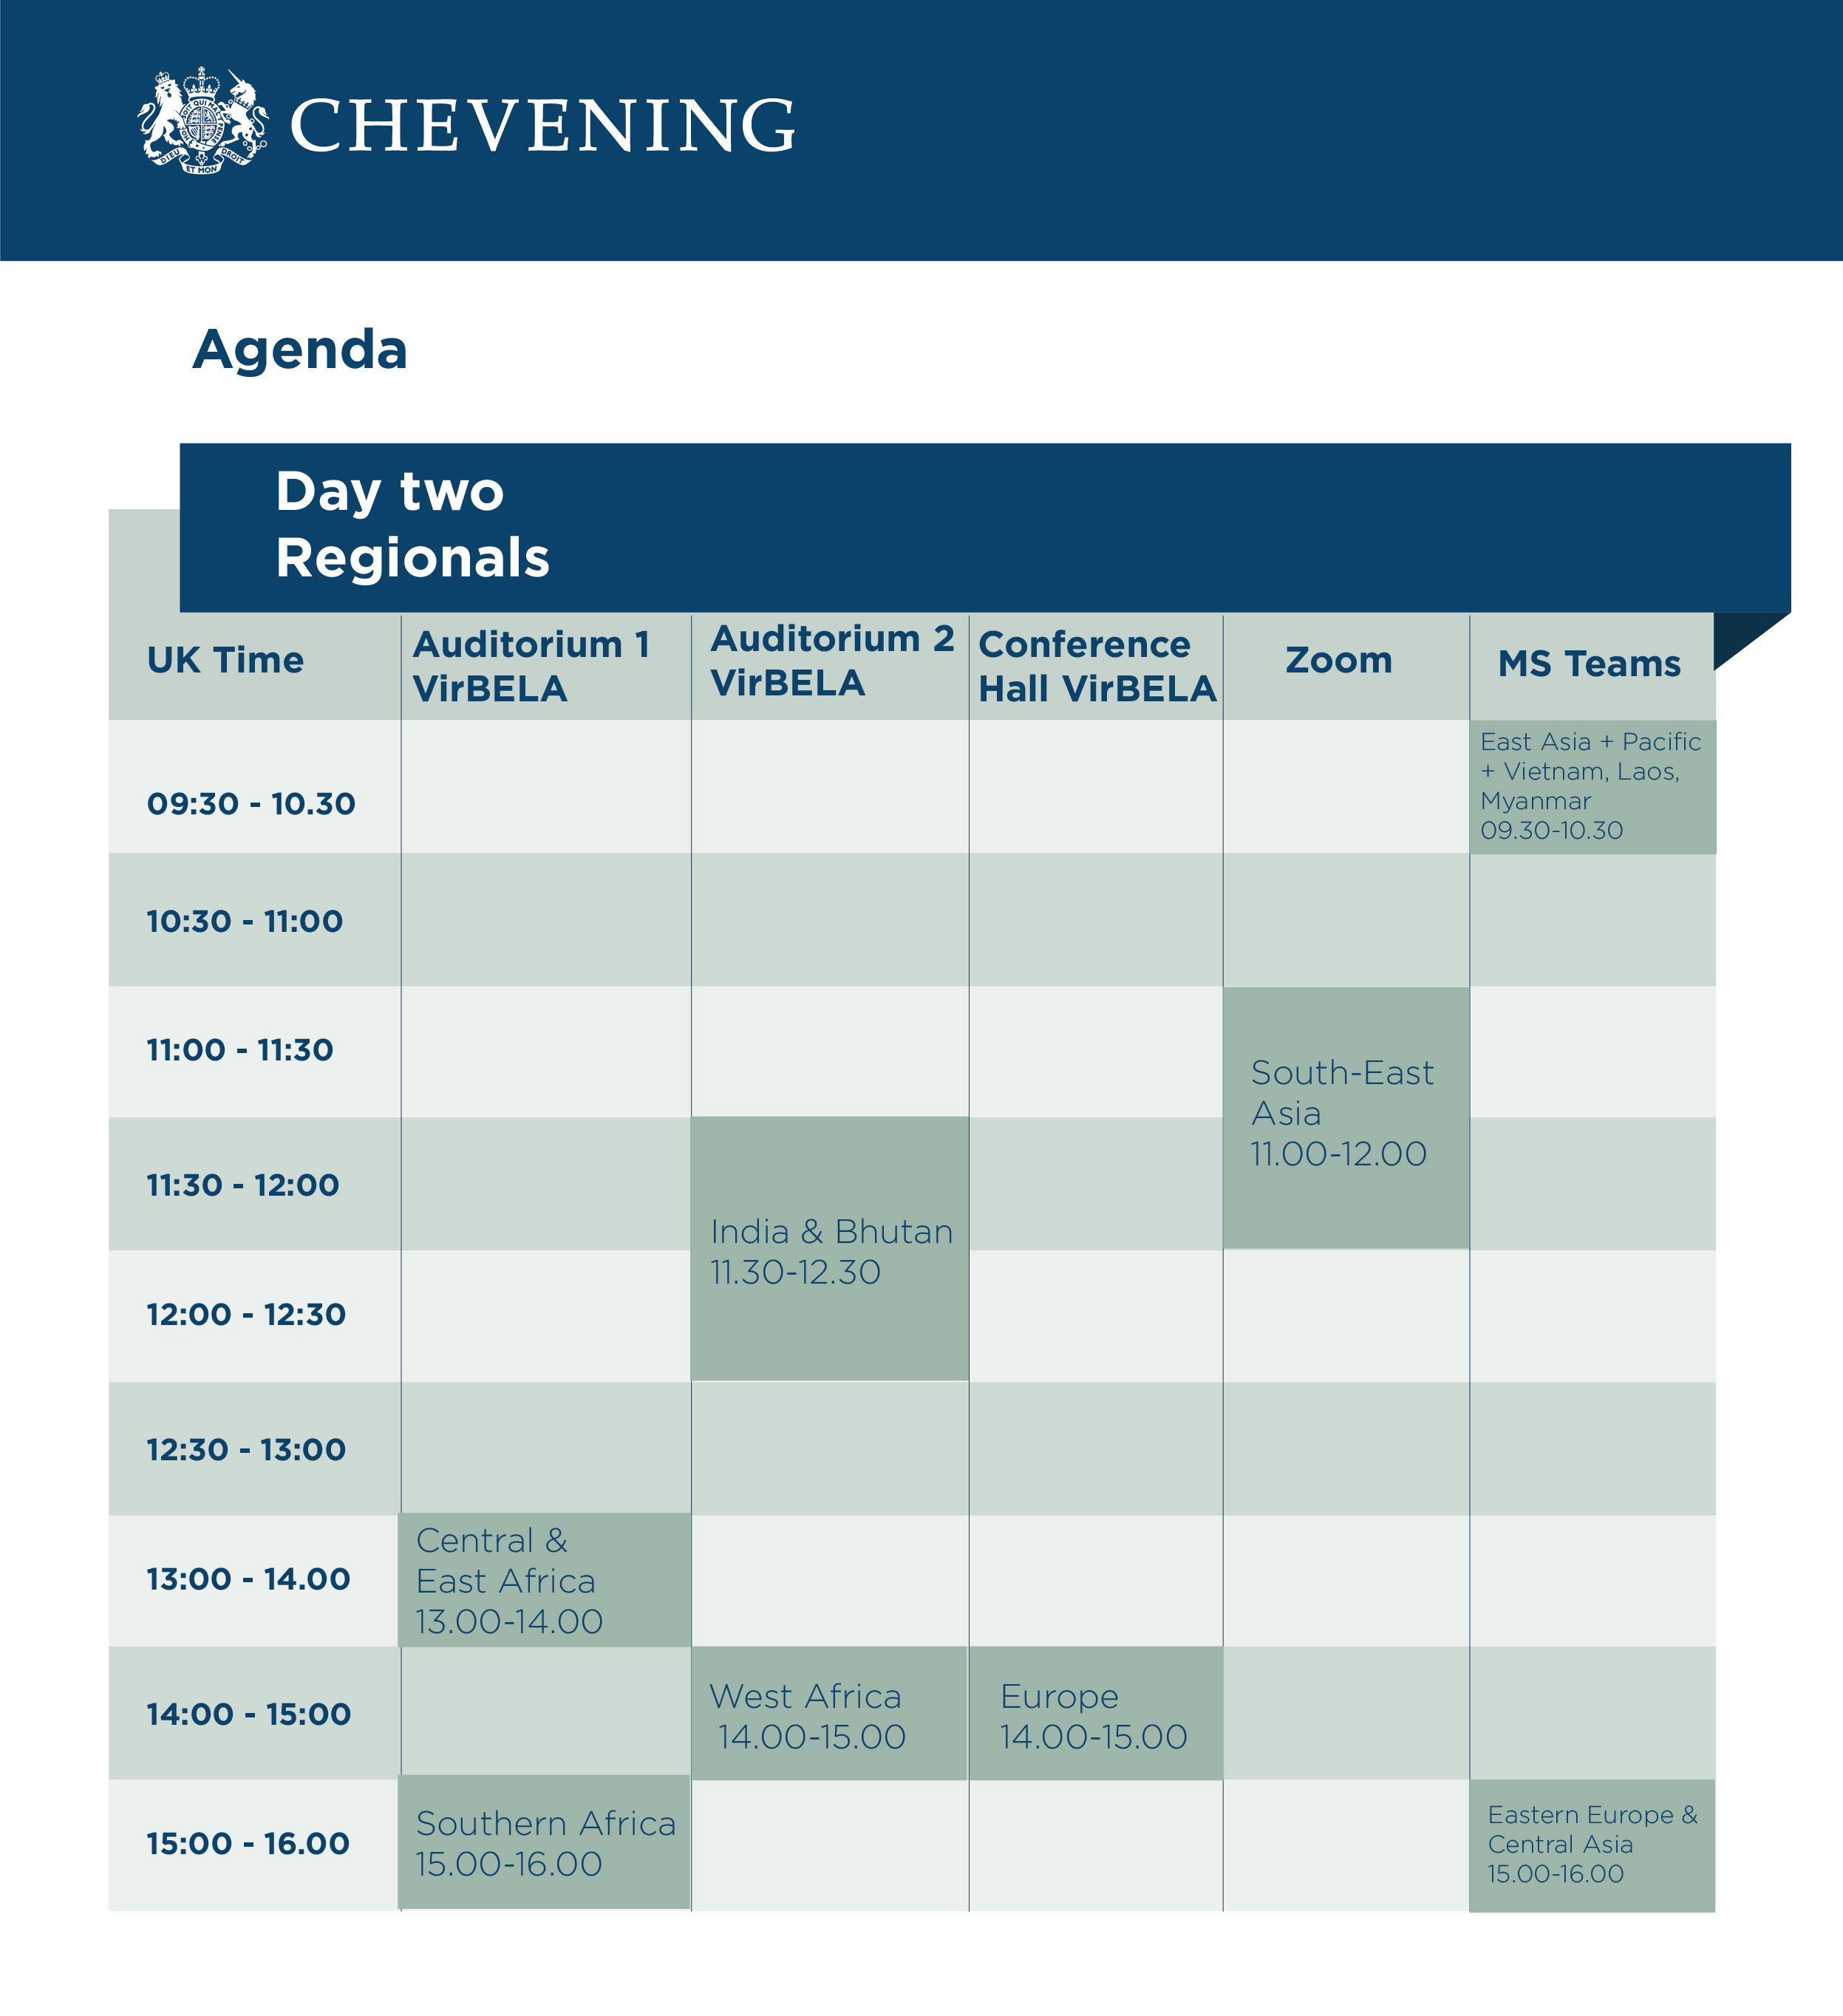 Chevening Farewell regional events day 2 version 2